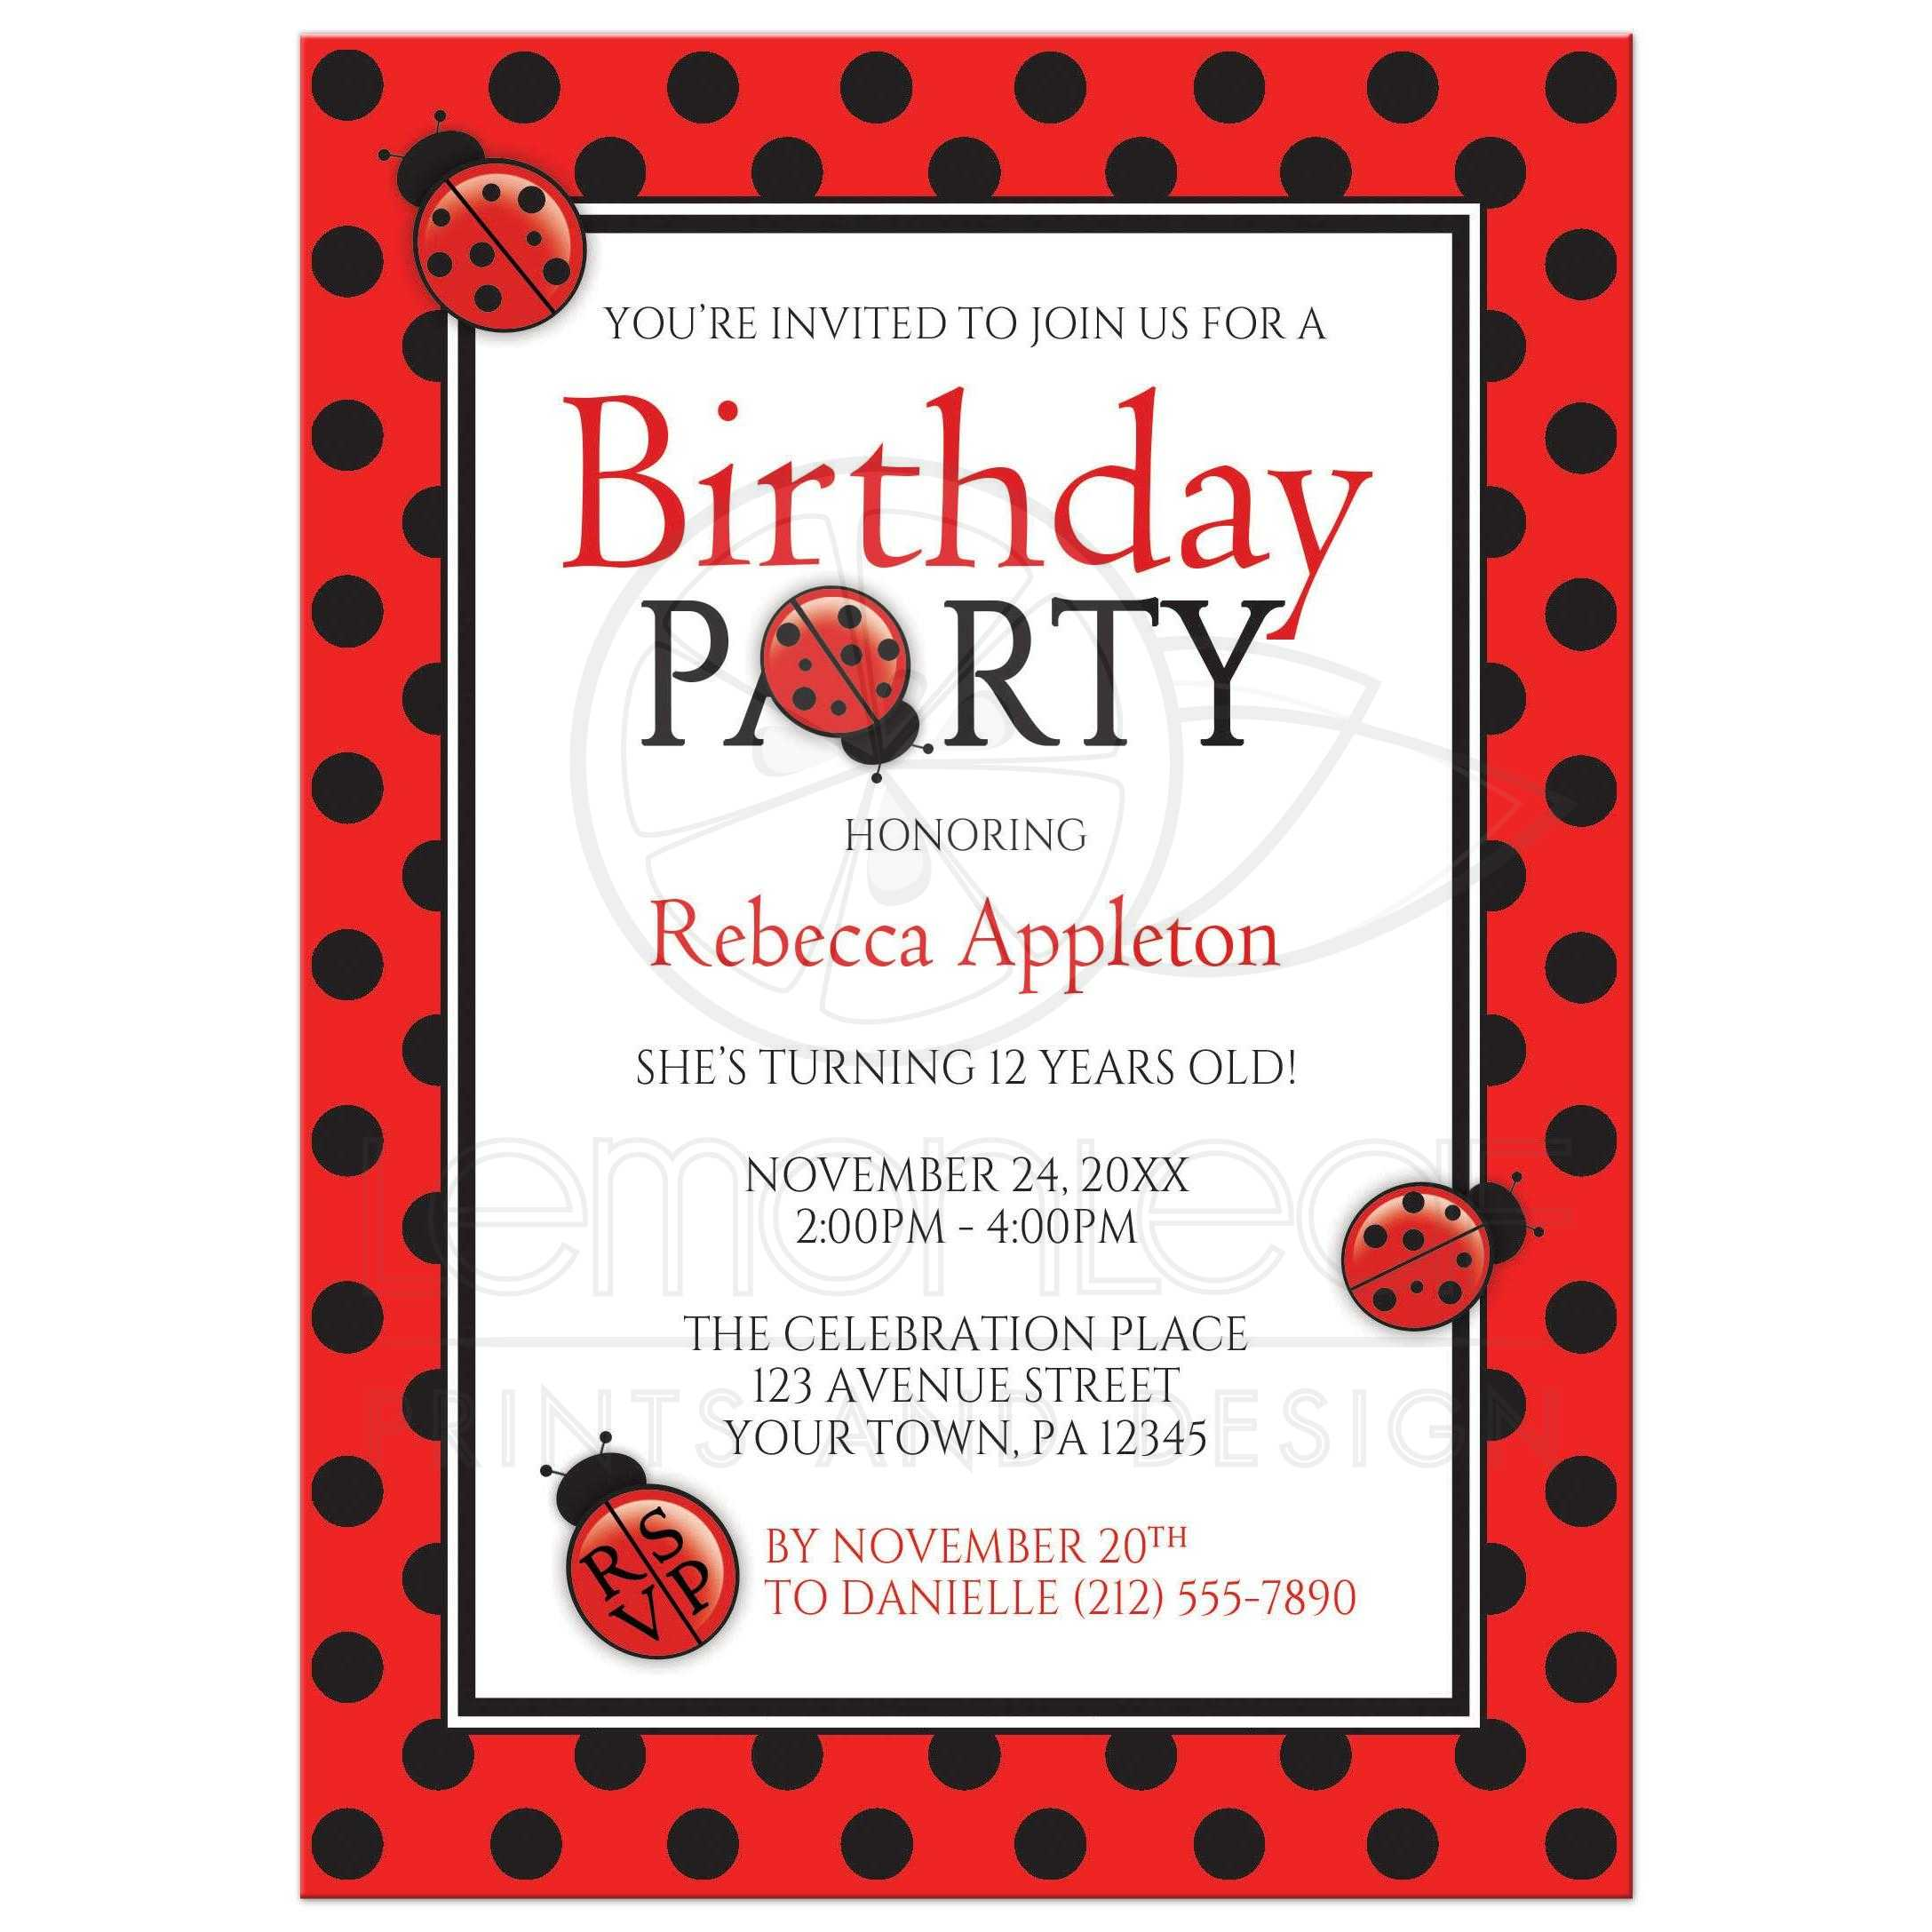 50438 Rectangle Polka Dot Red And Black Ladybug Birthday Party Invitationst1497368656